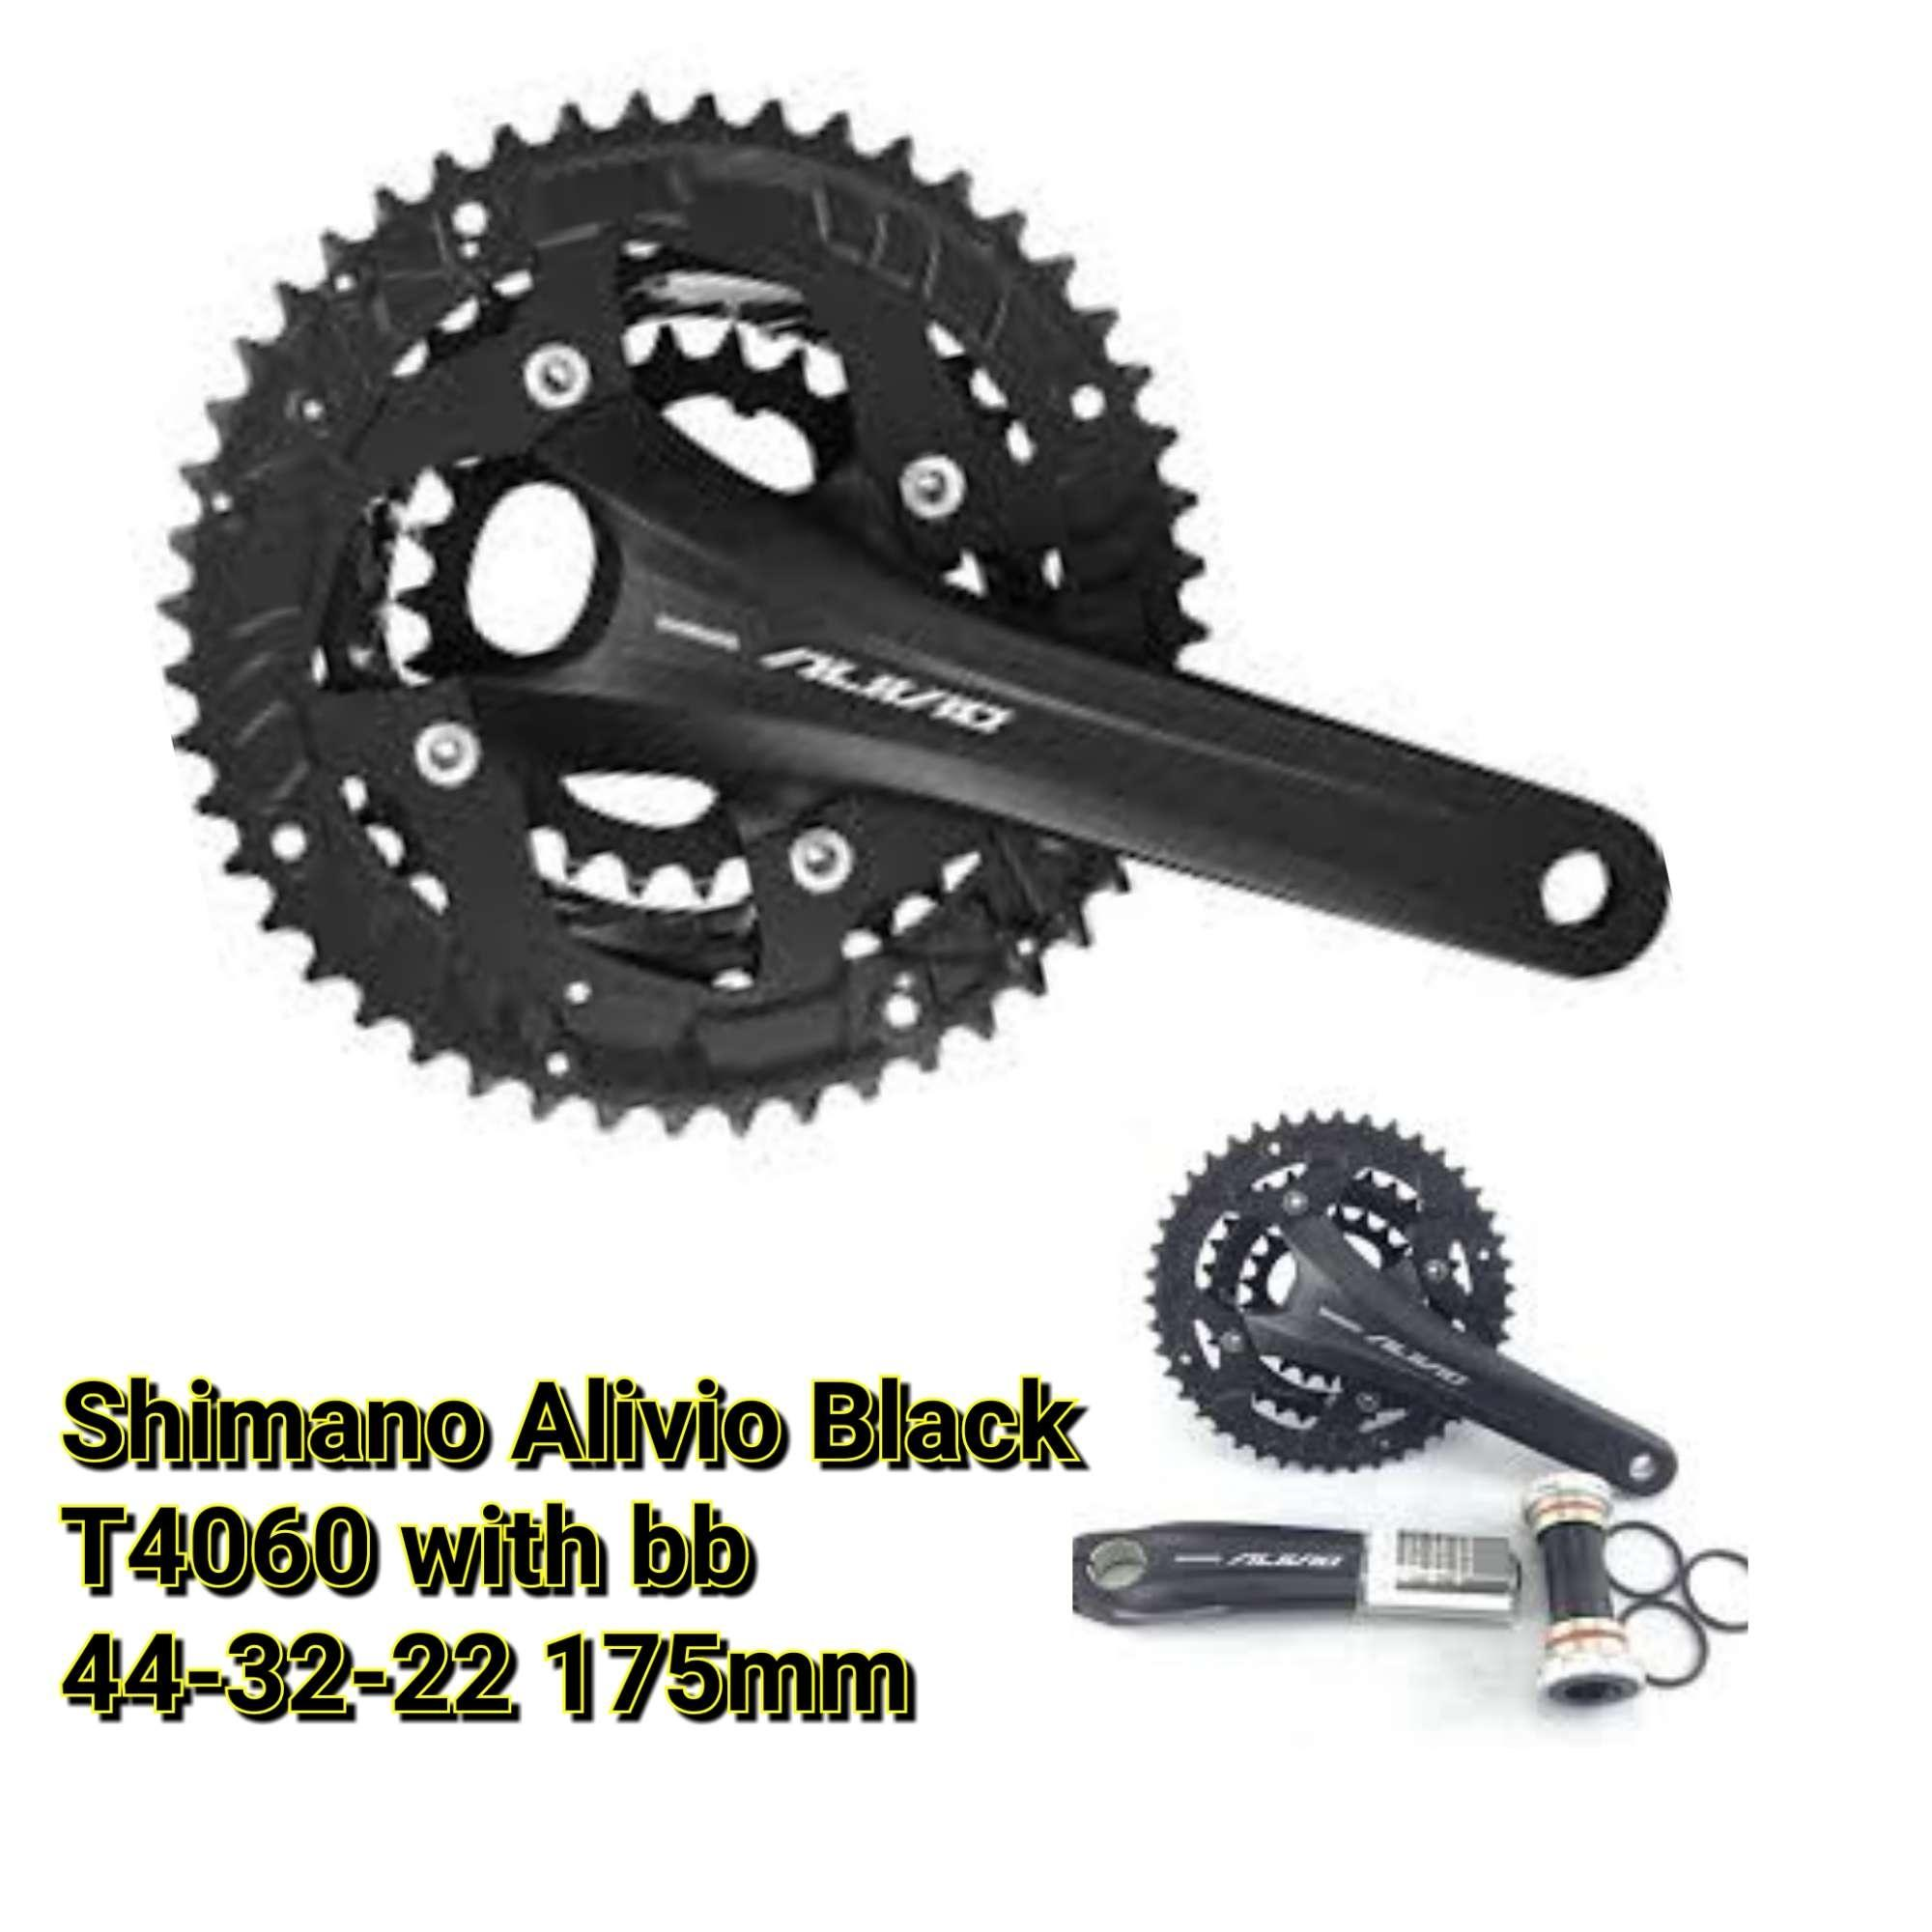 Shimano Philippines - Shimano Bike Parts for sale - prices & reviews